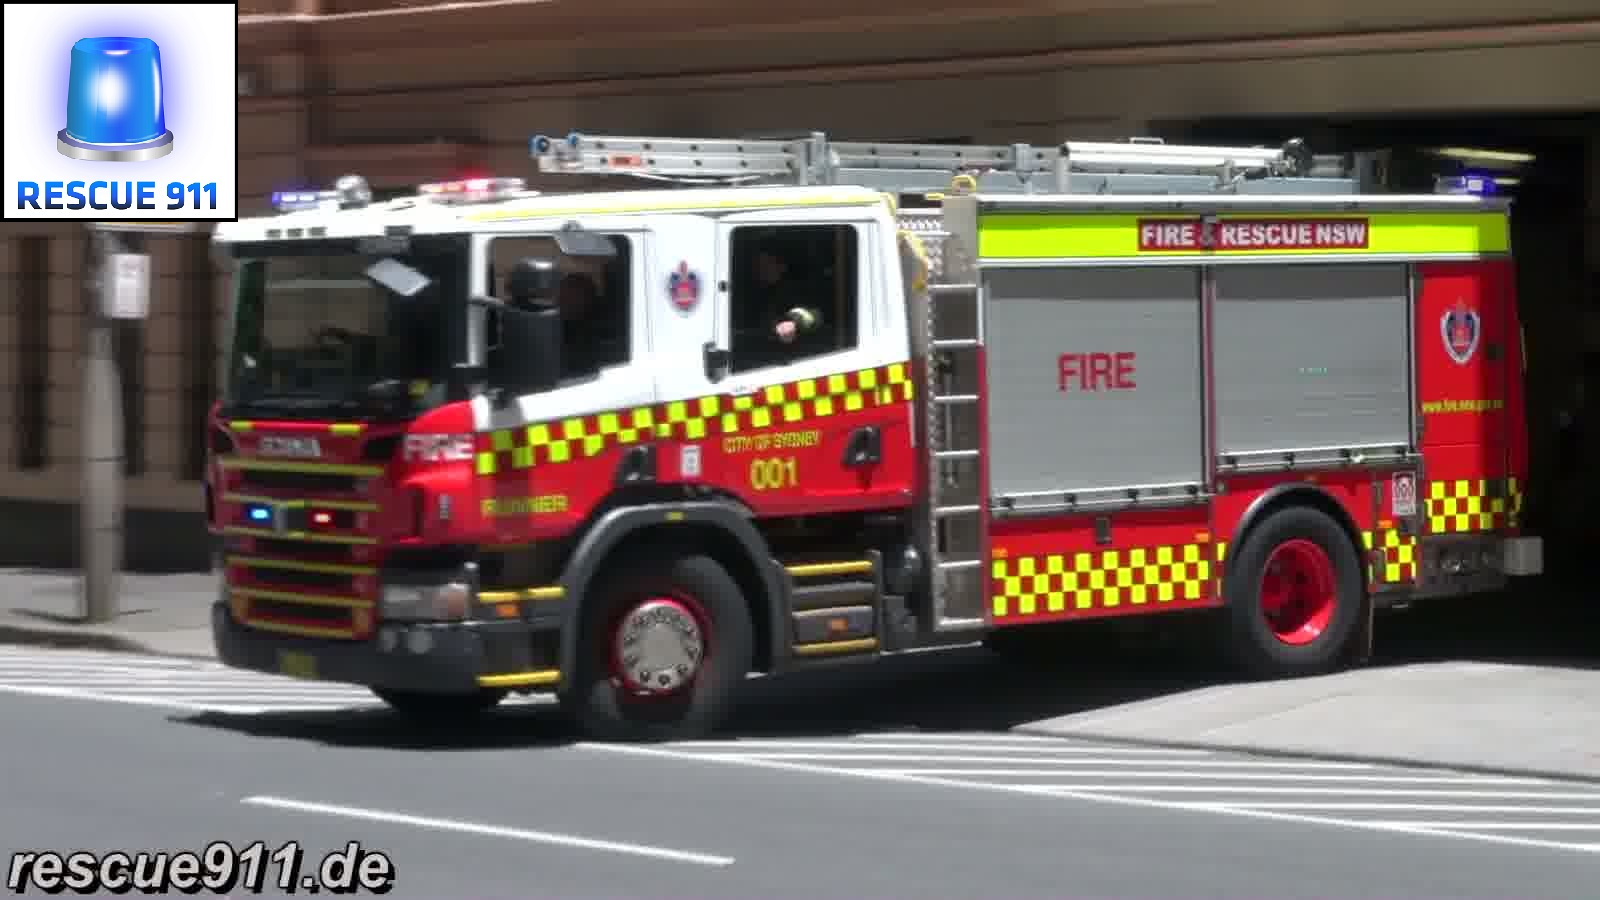 Pump Runner 001 City of Sydney Fire & Rescue NSW (stream)